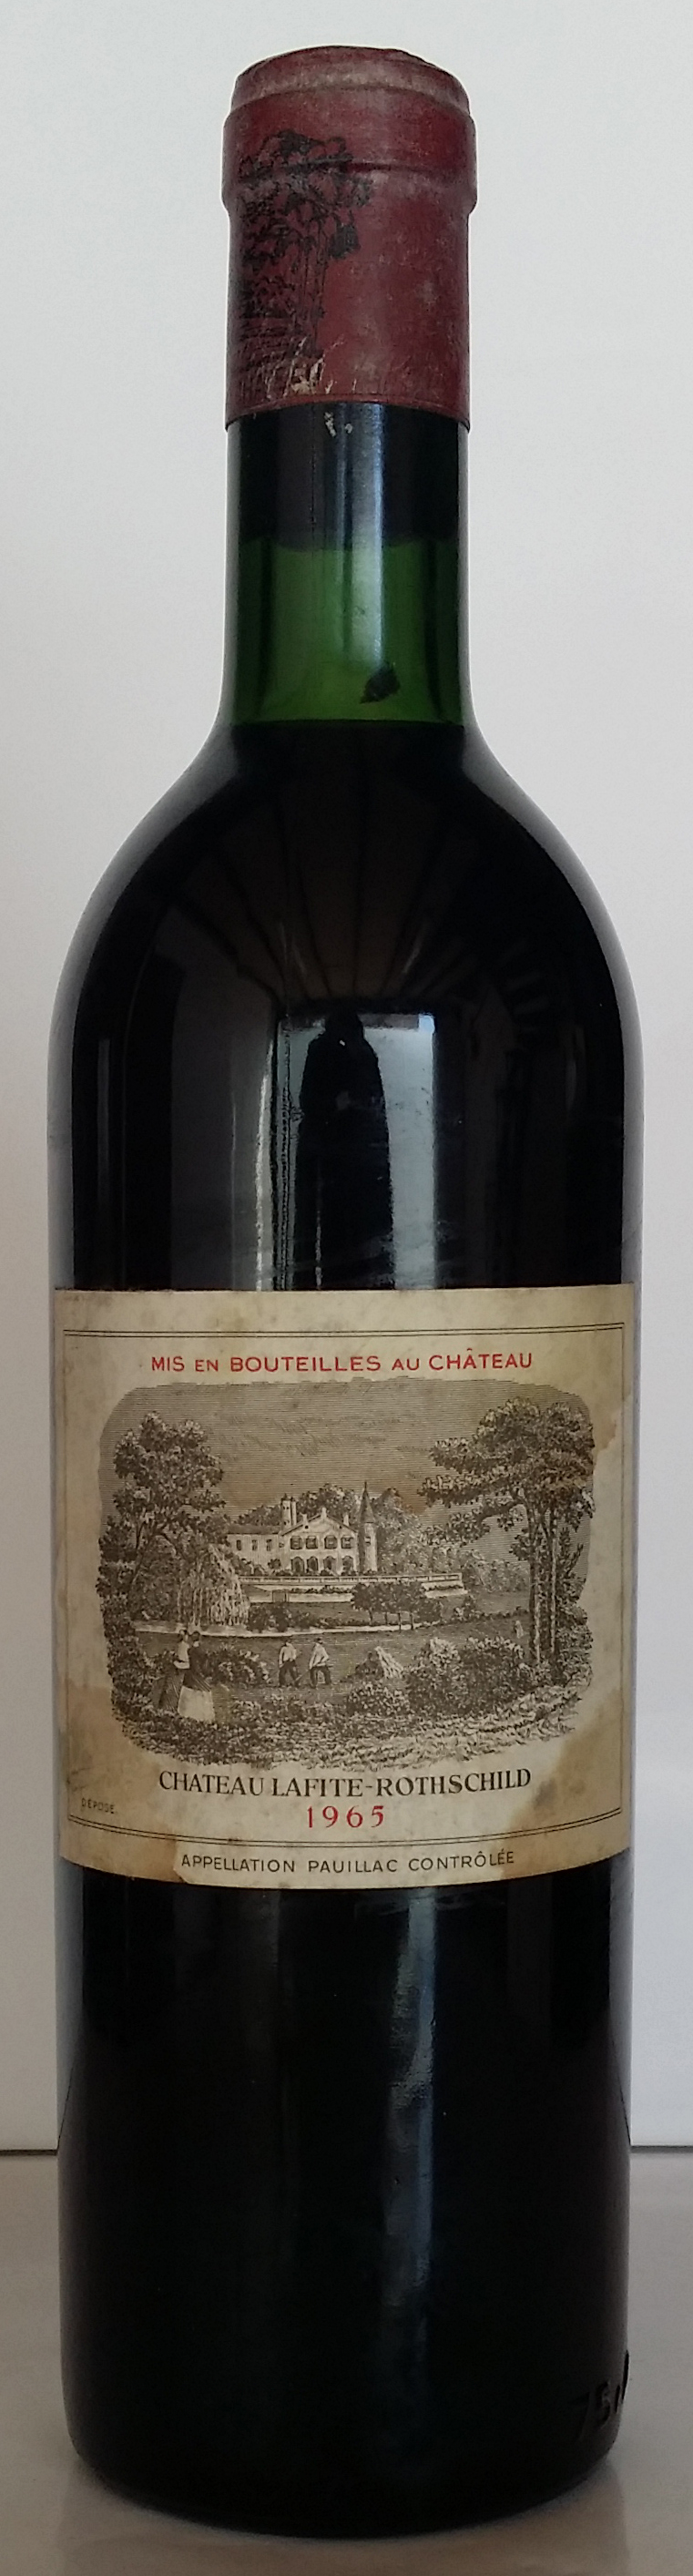 1965 Domaines Barons de Rothschild Chateau Lafite Rothschild